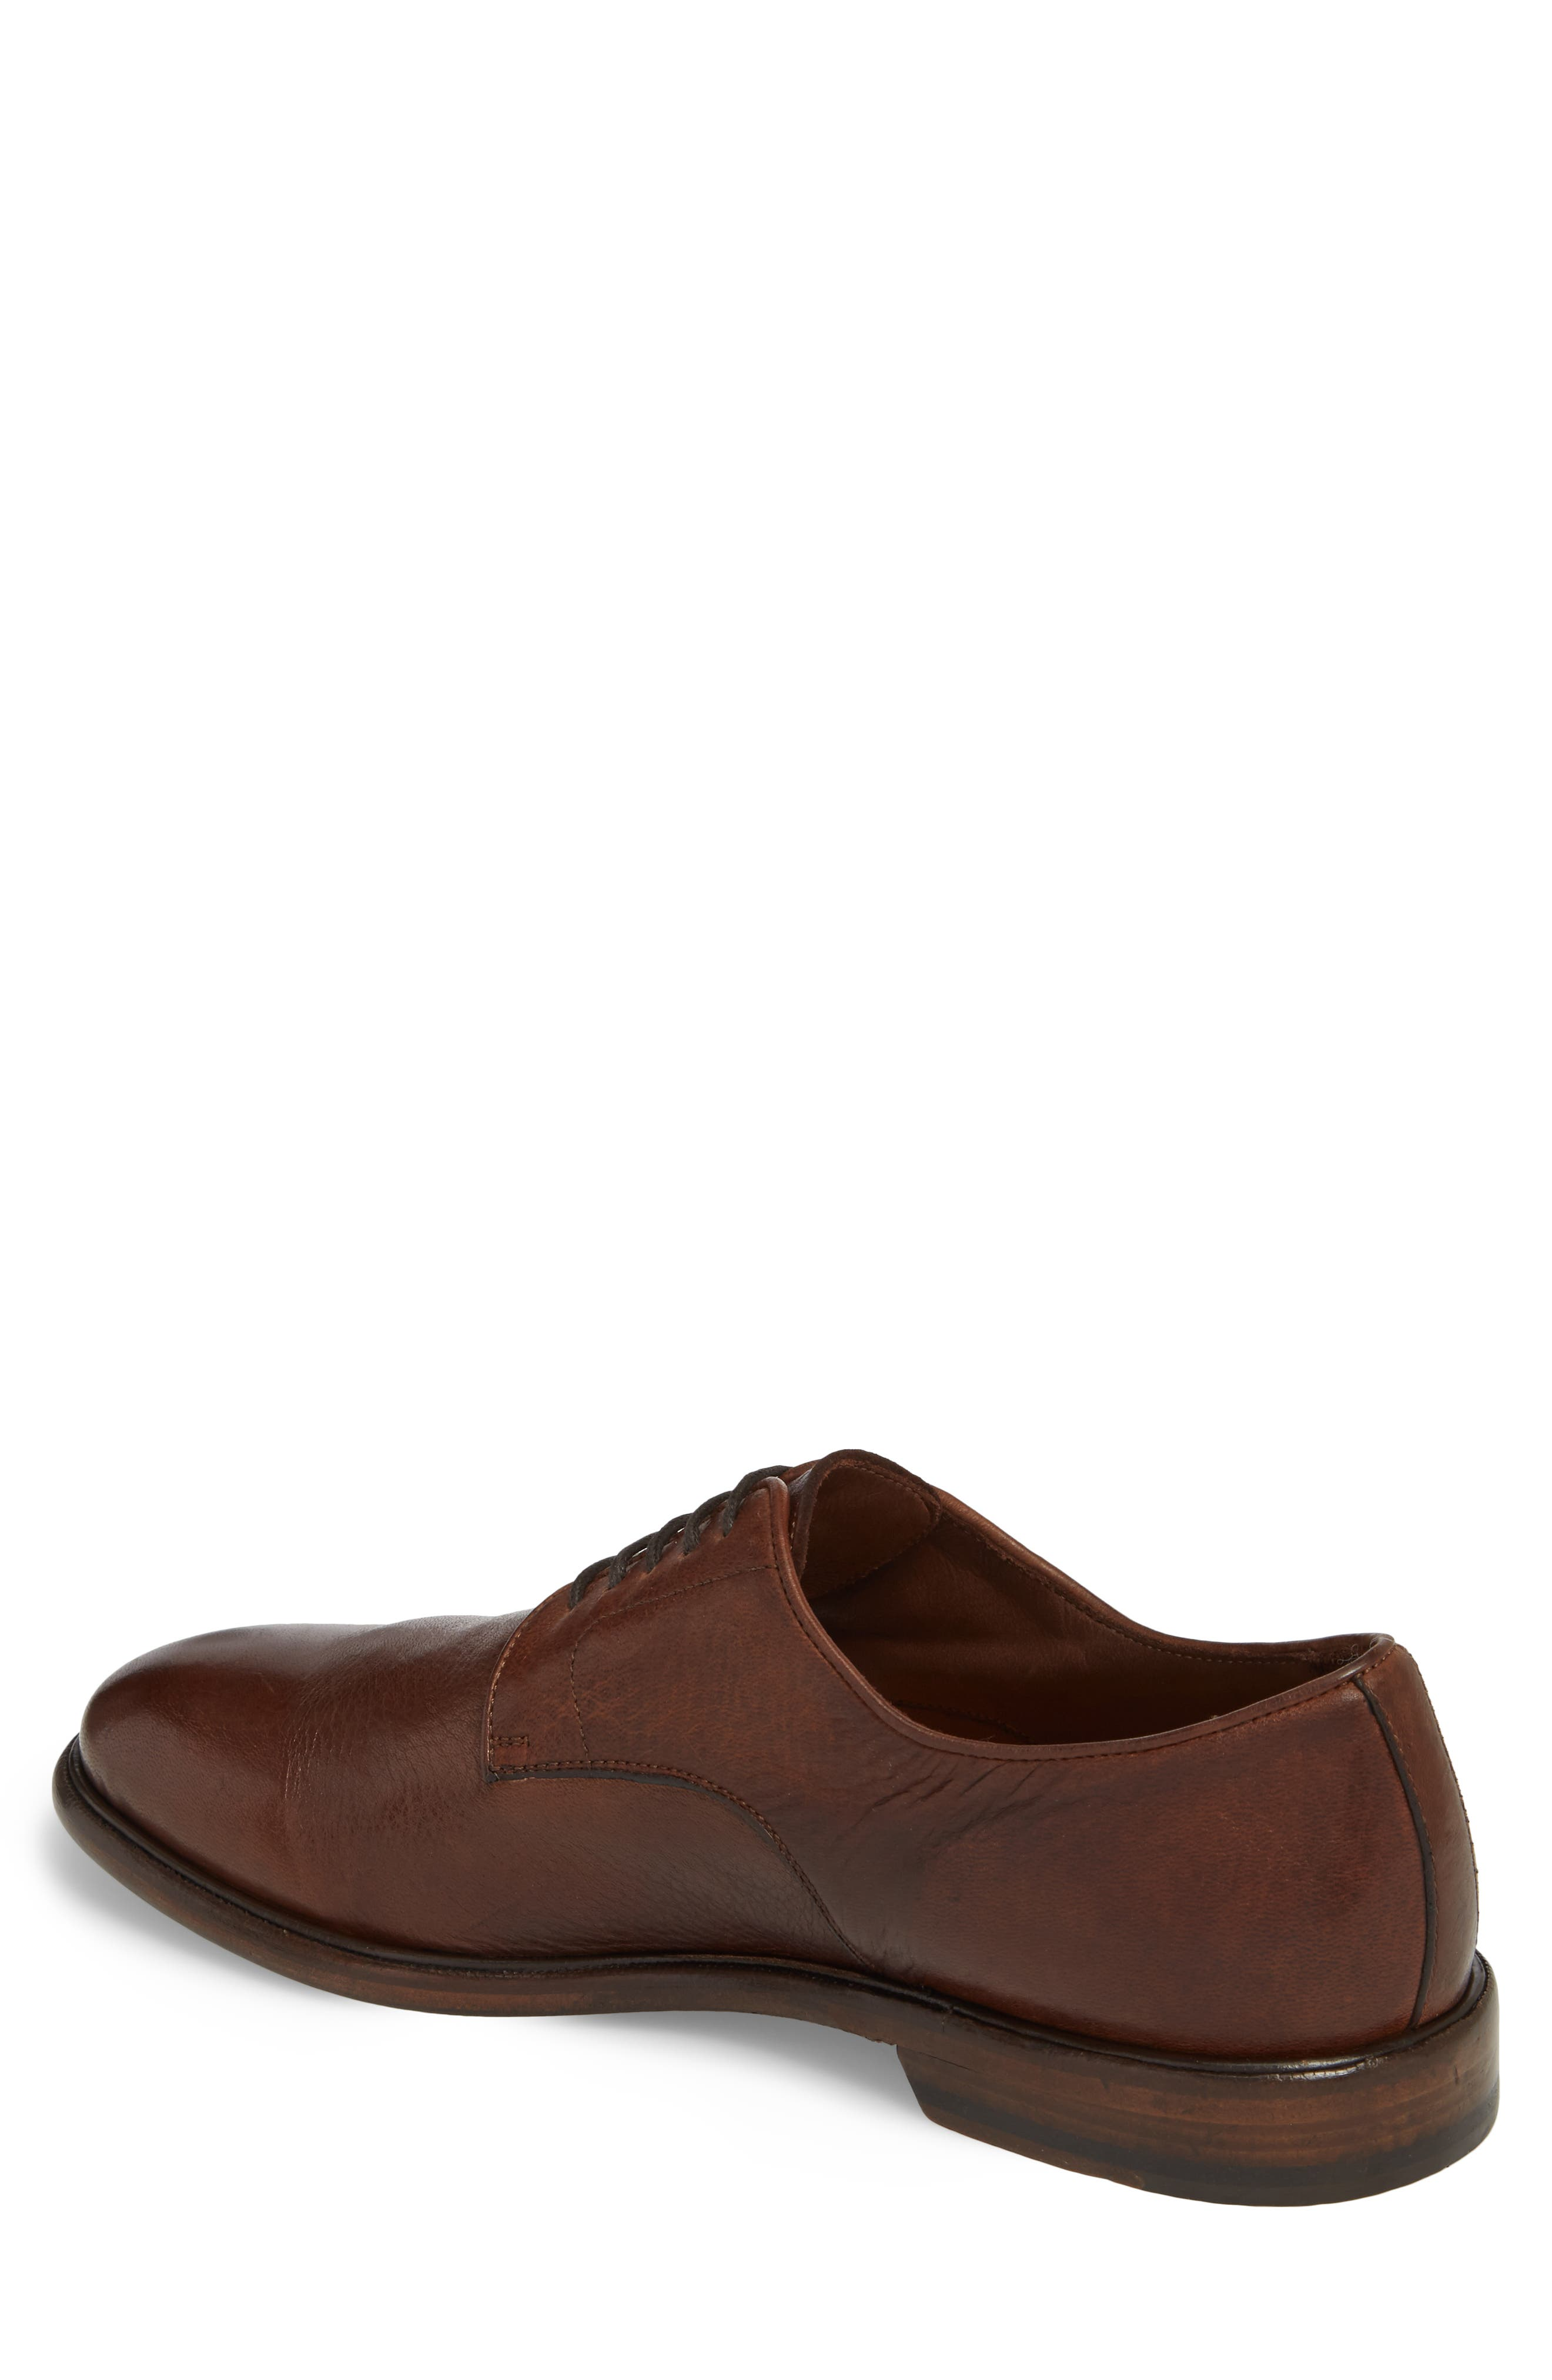 Fisher Derby,                             Alternate thumbnail 2, color,                             Cognac Leather